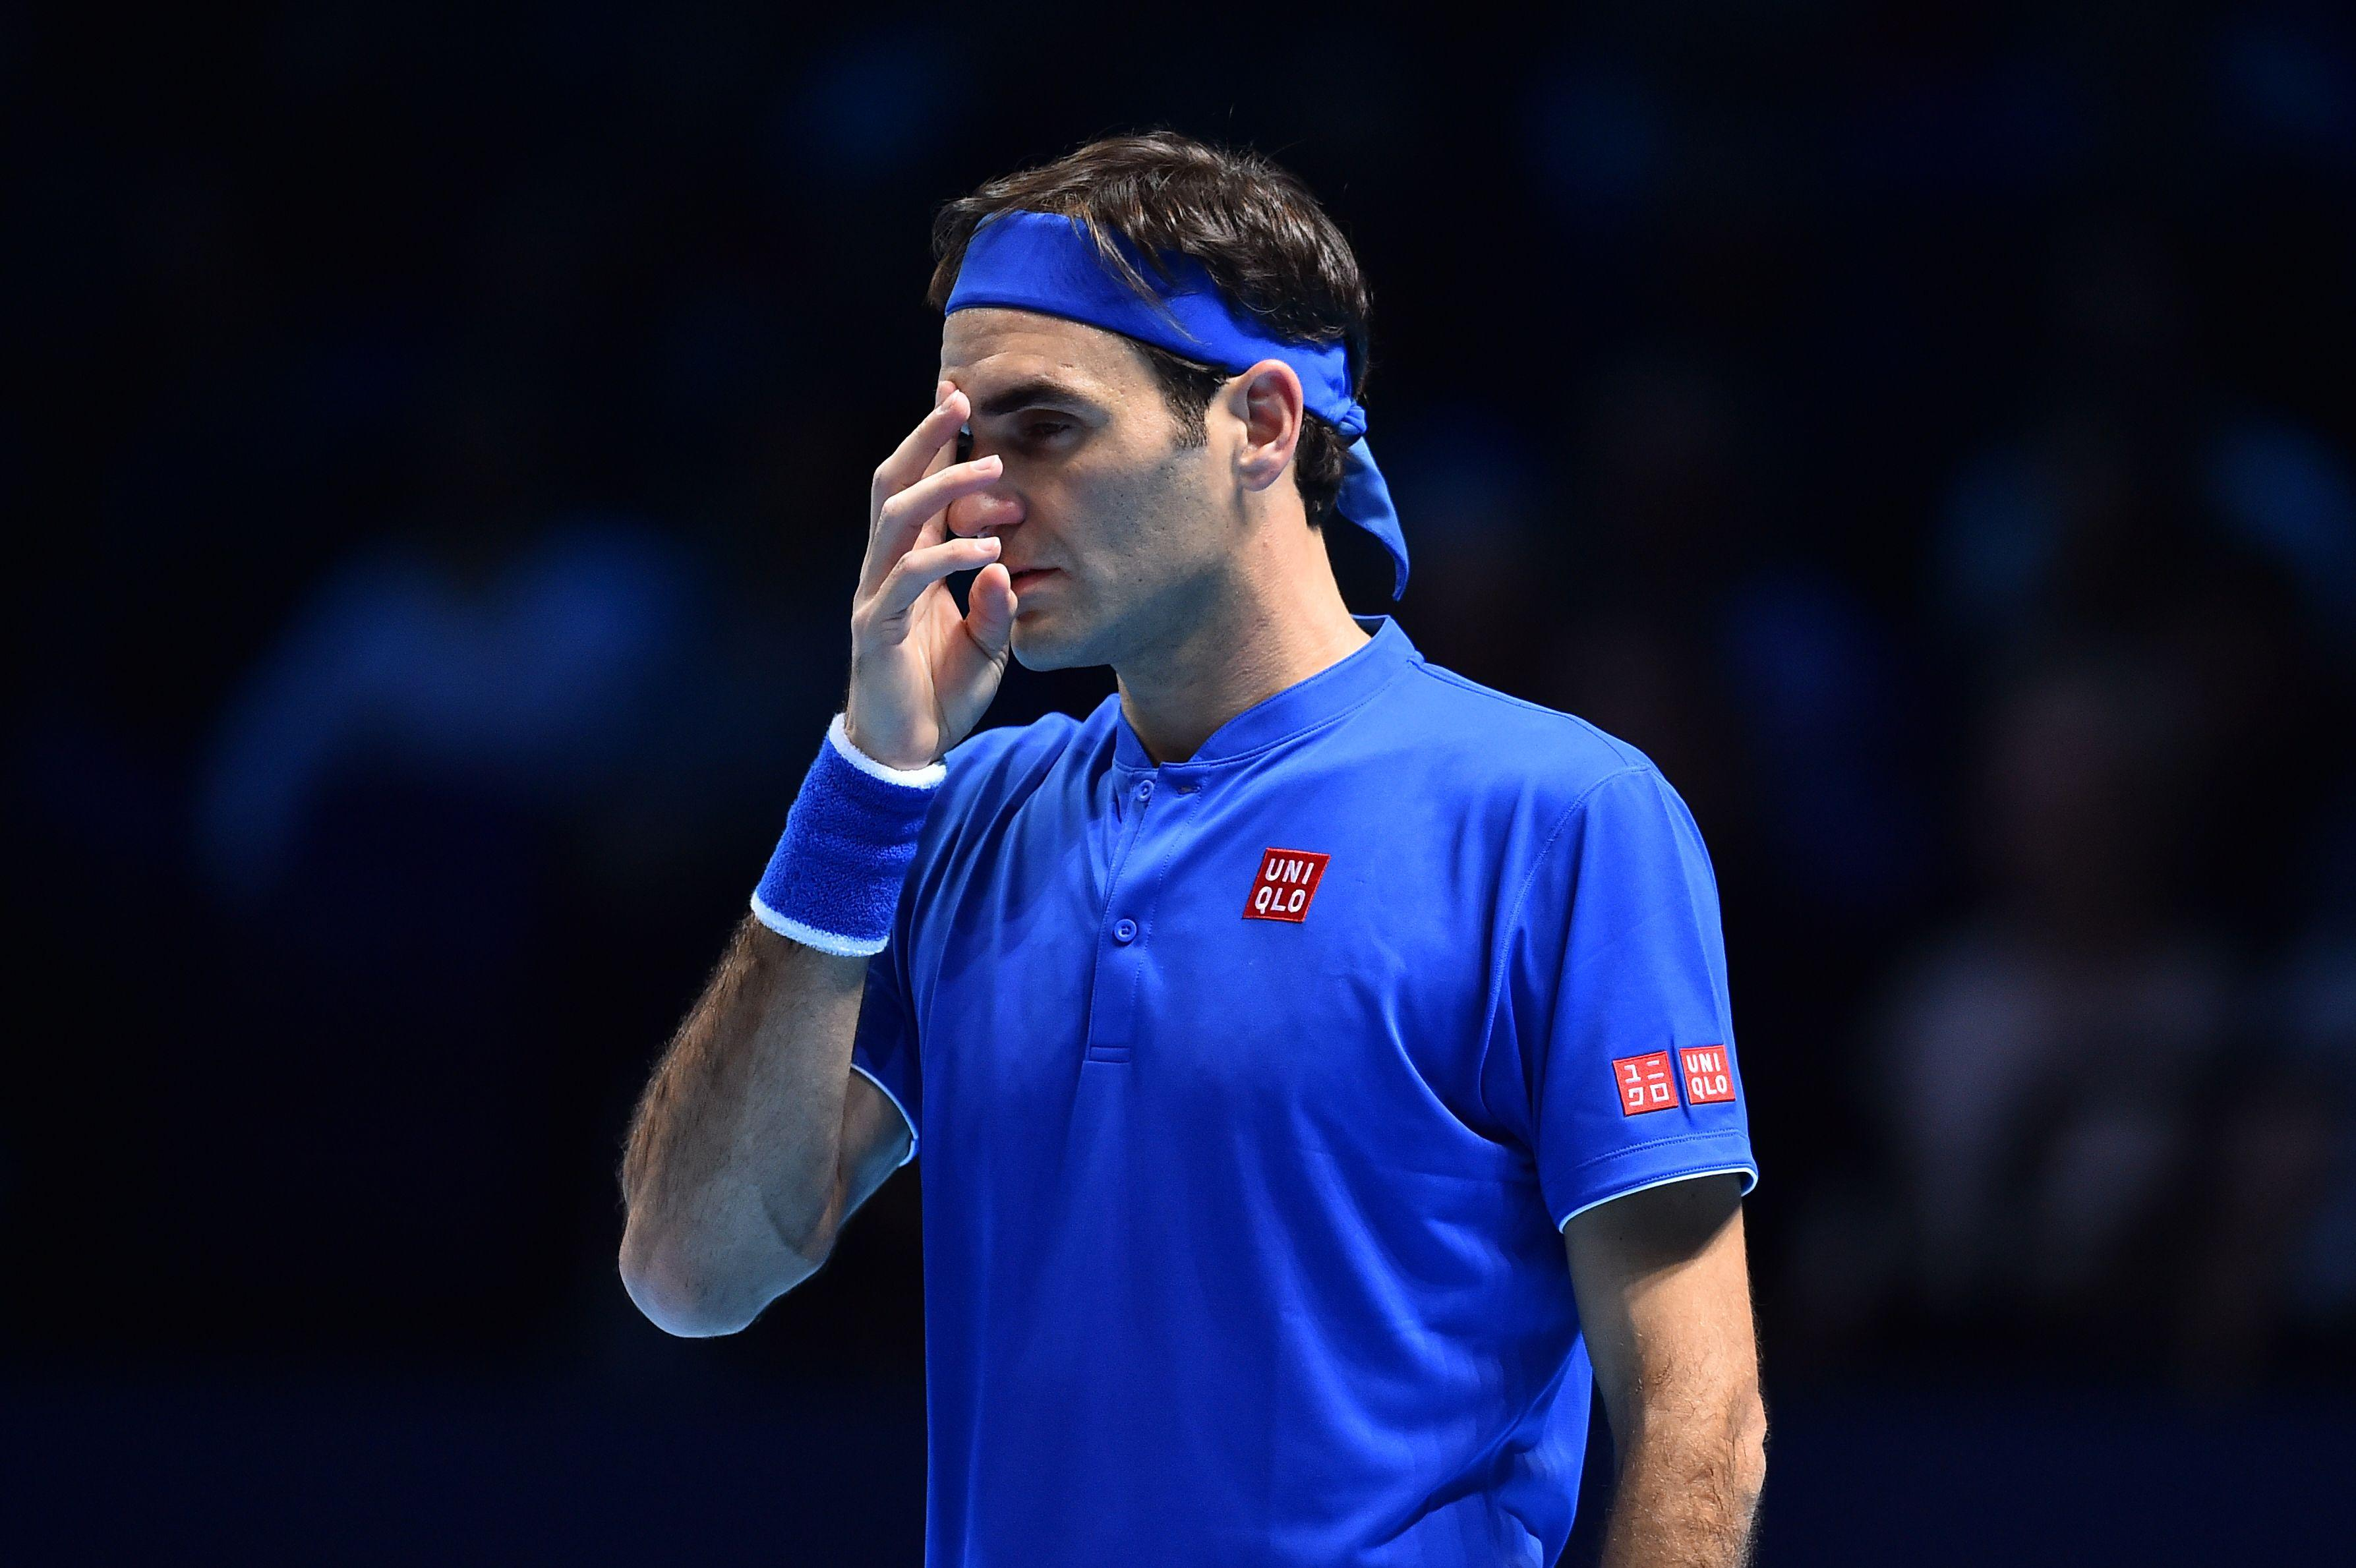 Roger Federer has the yips, says former British No 1 Annabel Croft